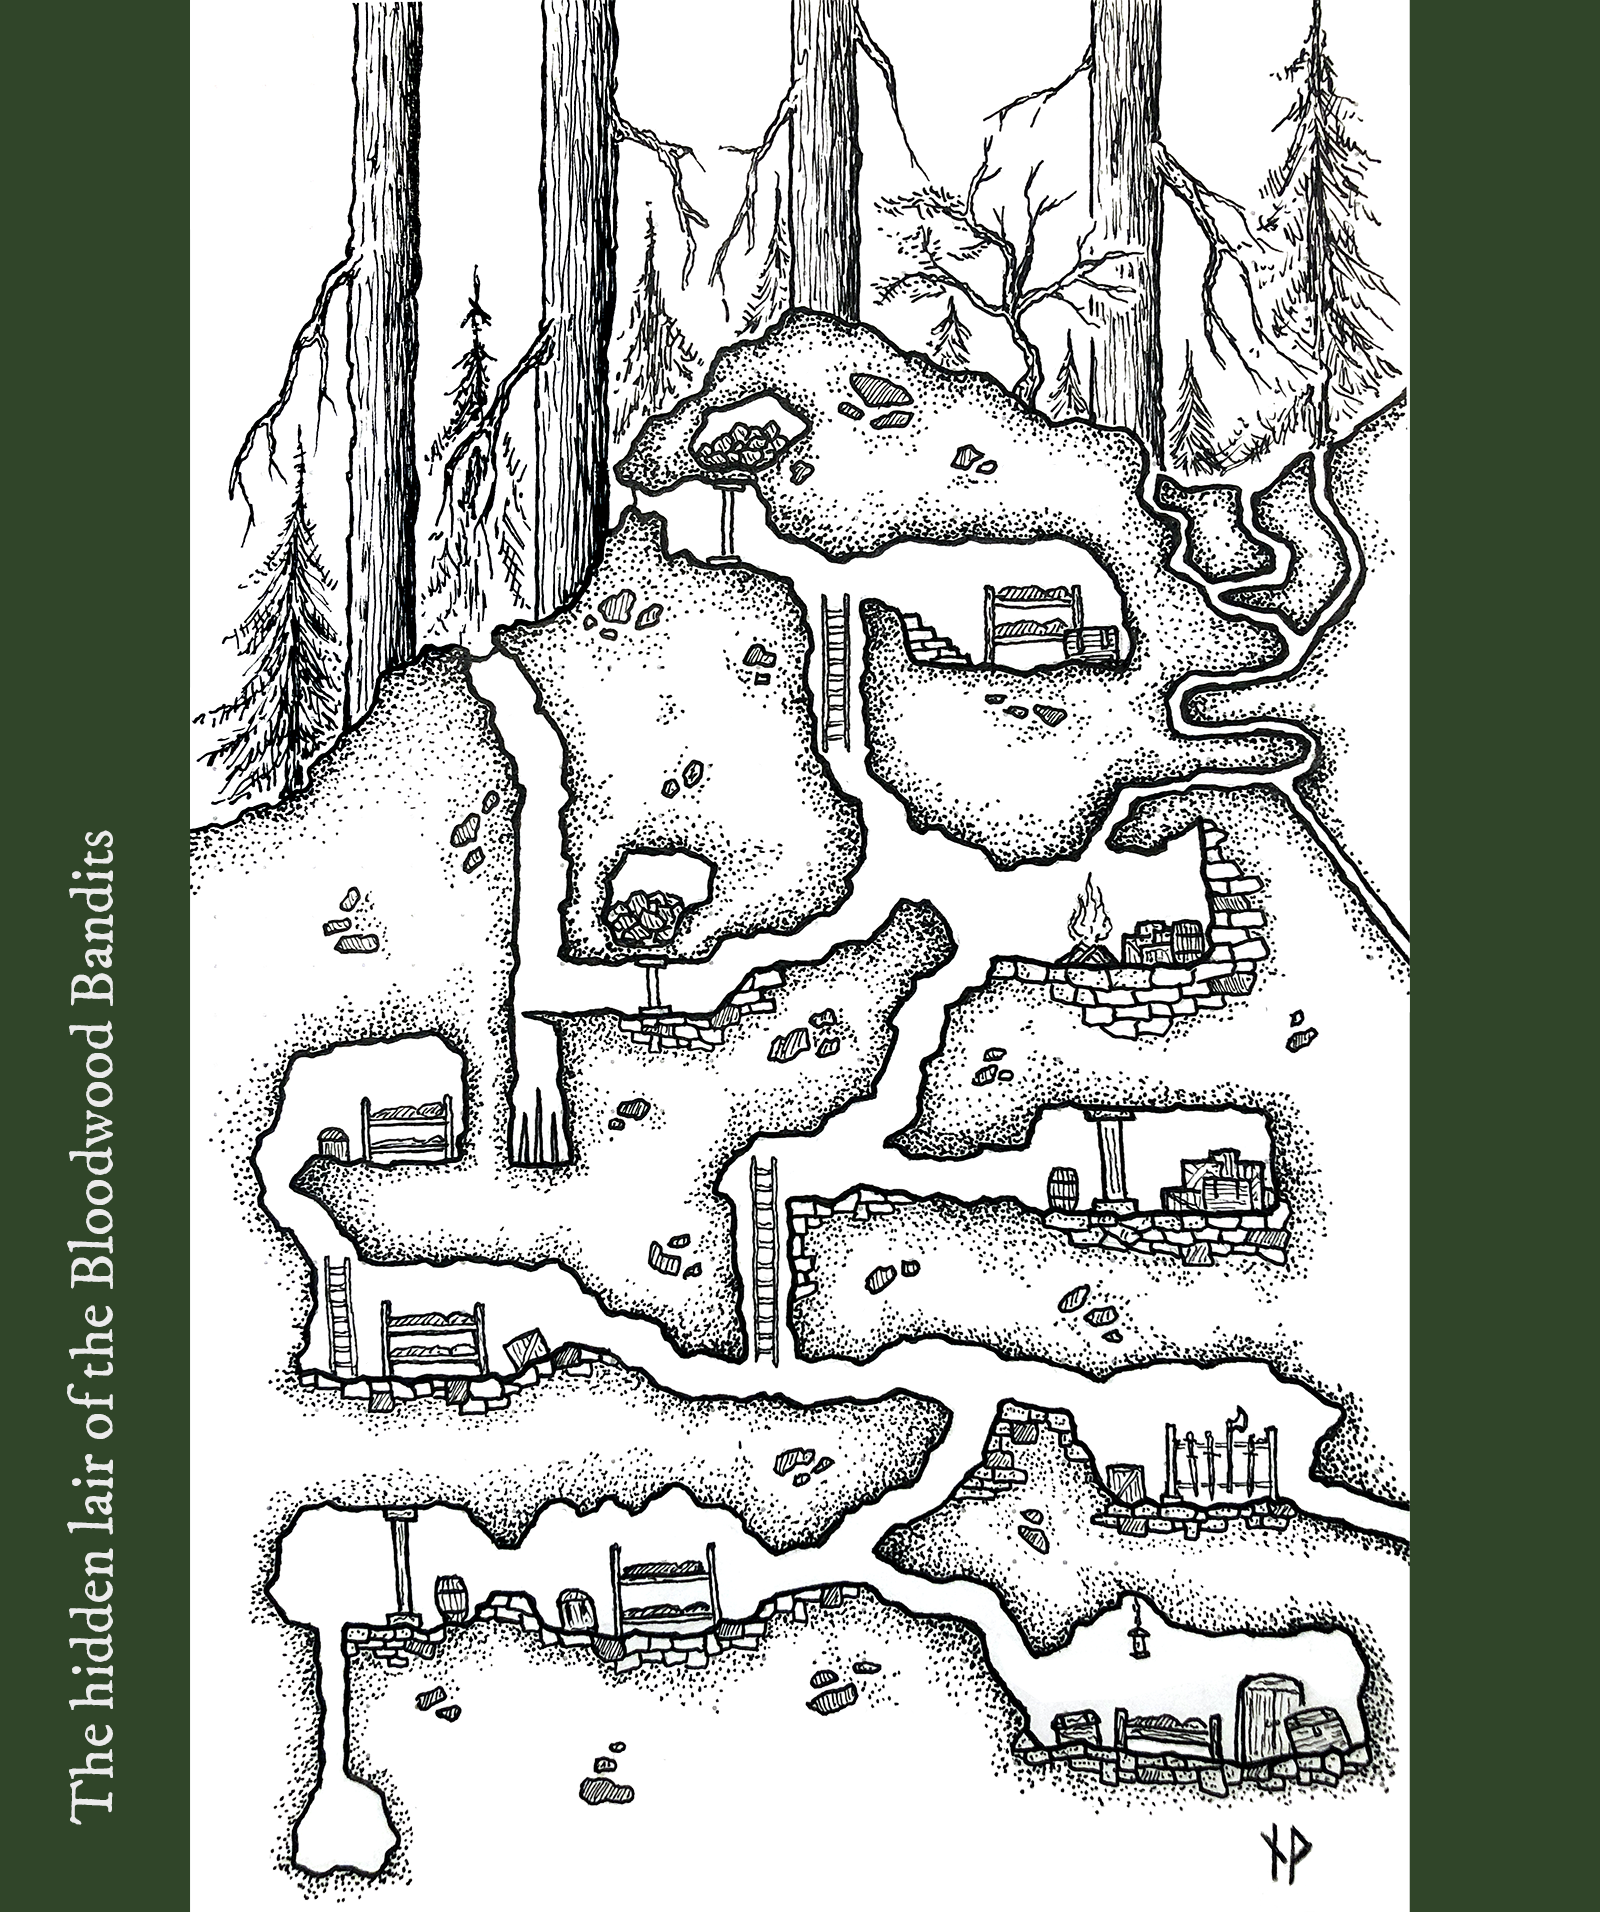 Vertical map of the lair of the Bloodwood Bandits